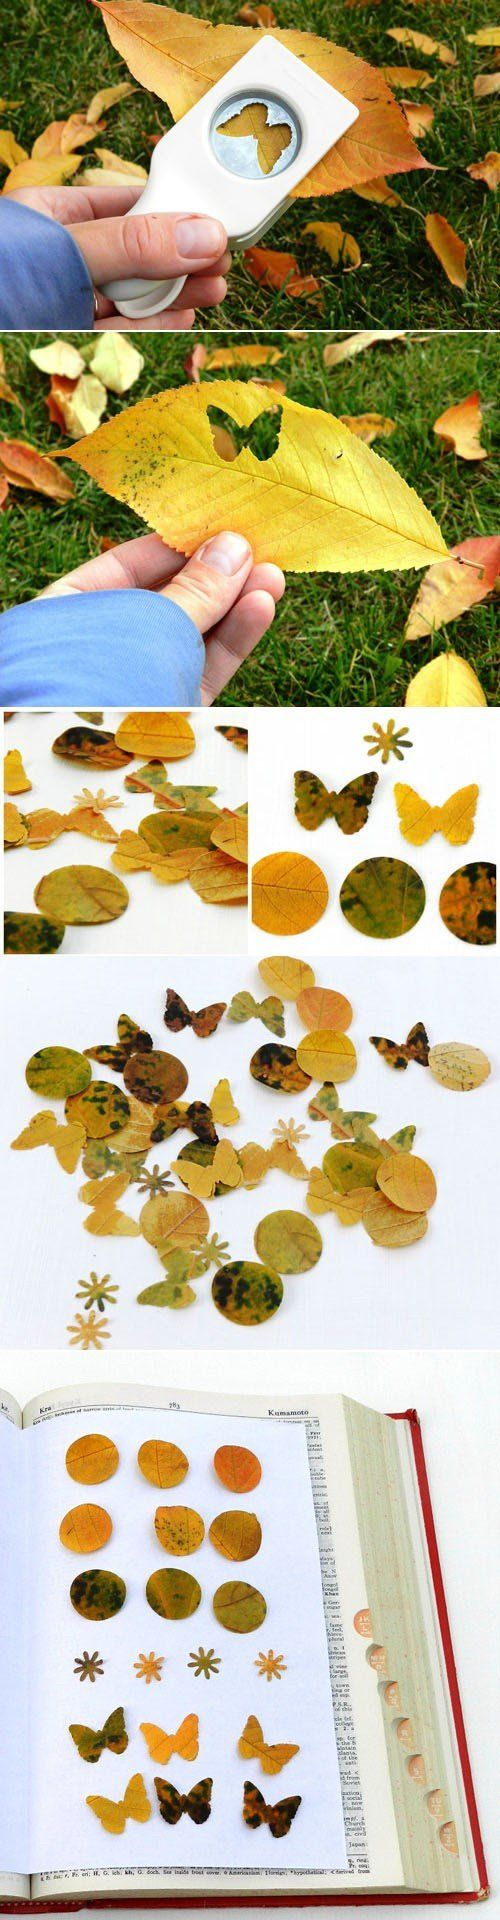 Cut confetti out of leaves as an alternative to rice or bird seed... Cute idea! Try using our Xcut Palm Punches - http://www.onestopcraftshop.com/x-cut--palm-punches-816-c.asp